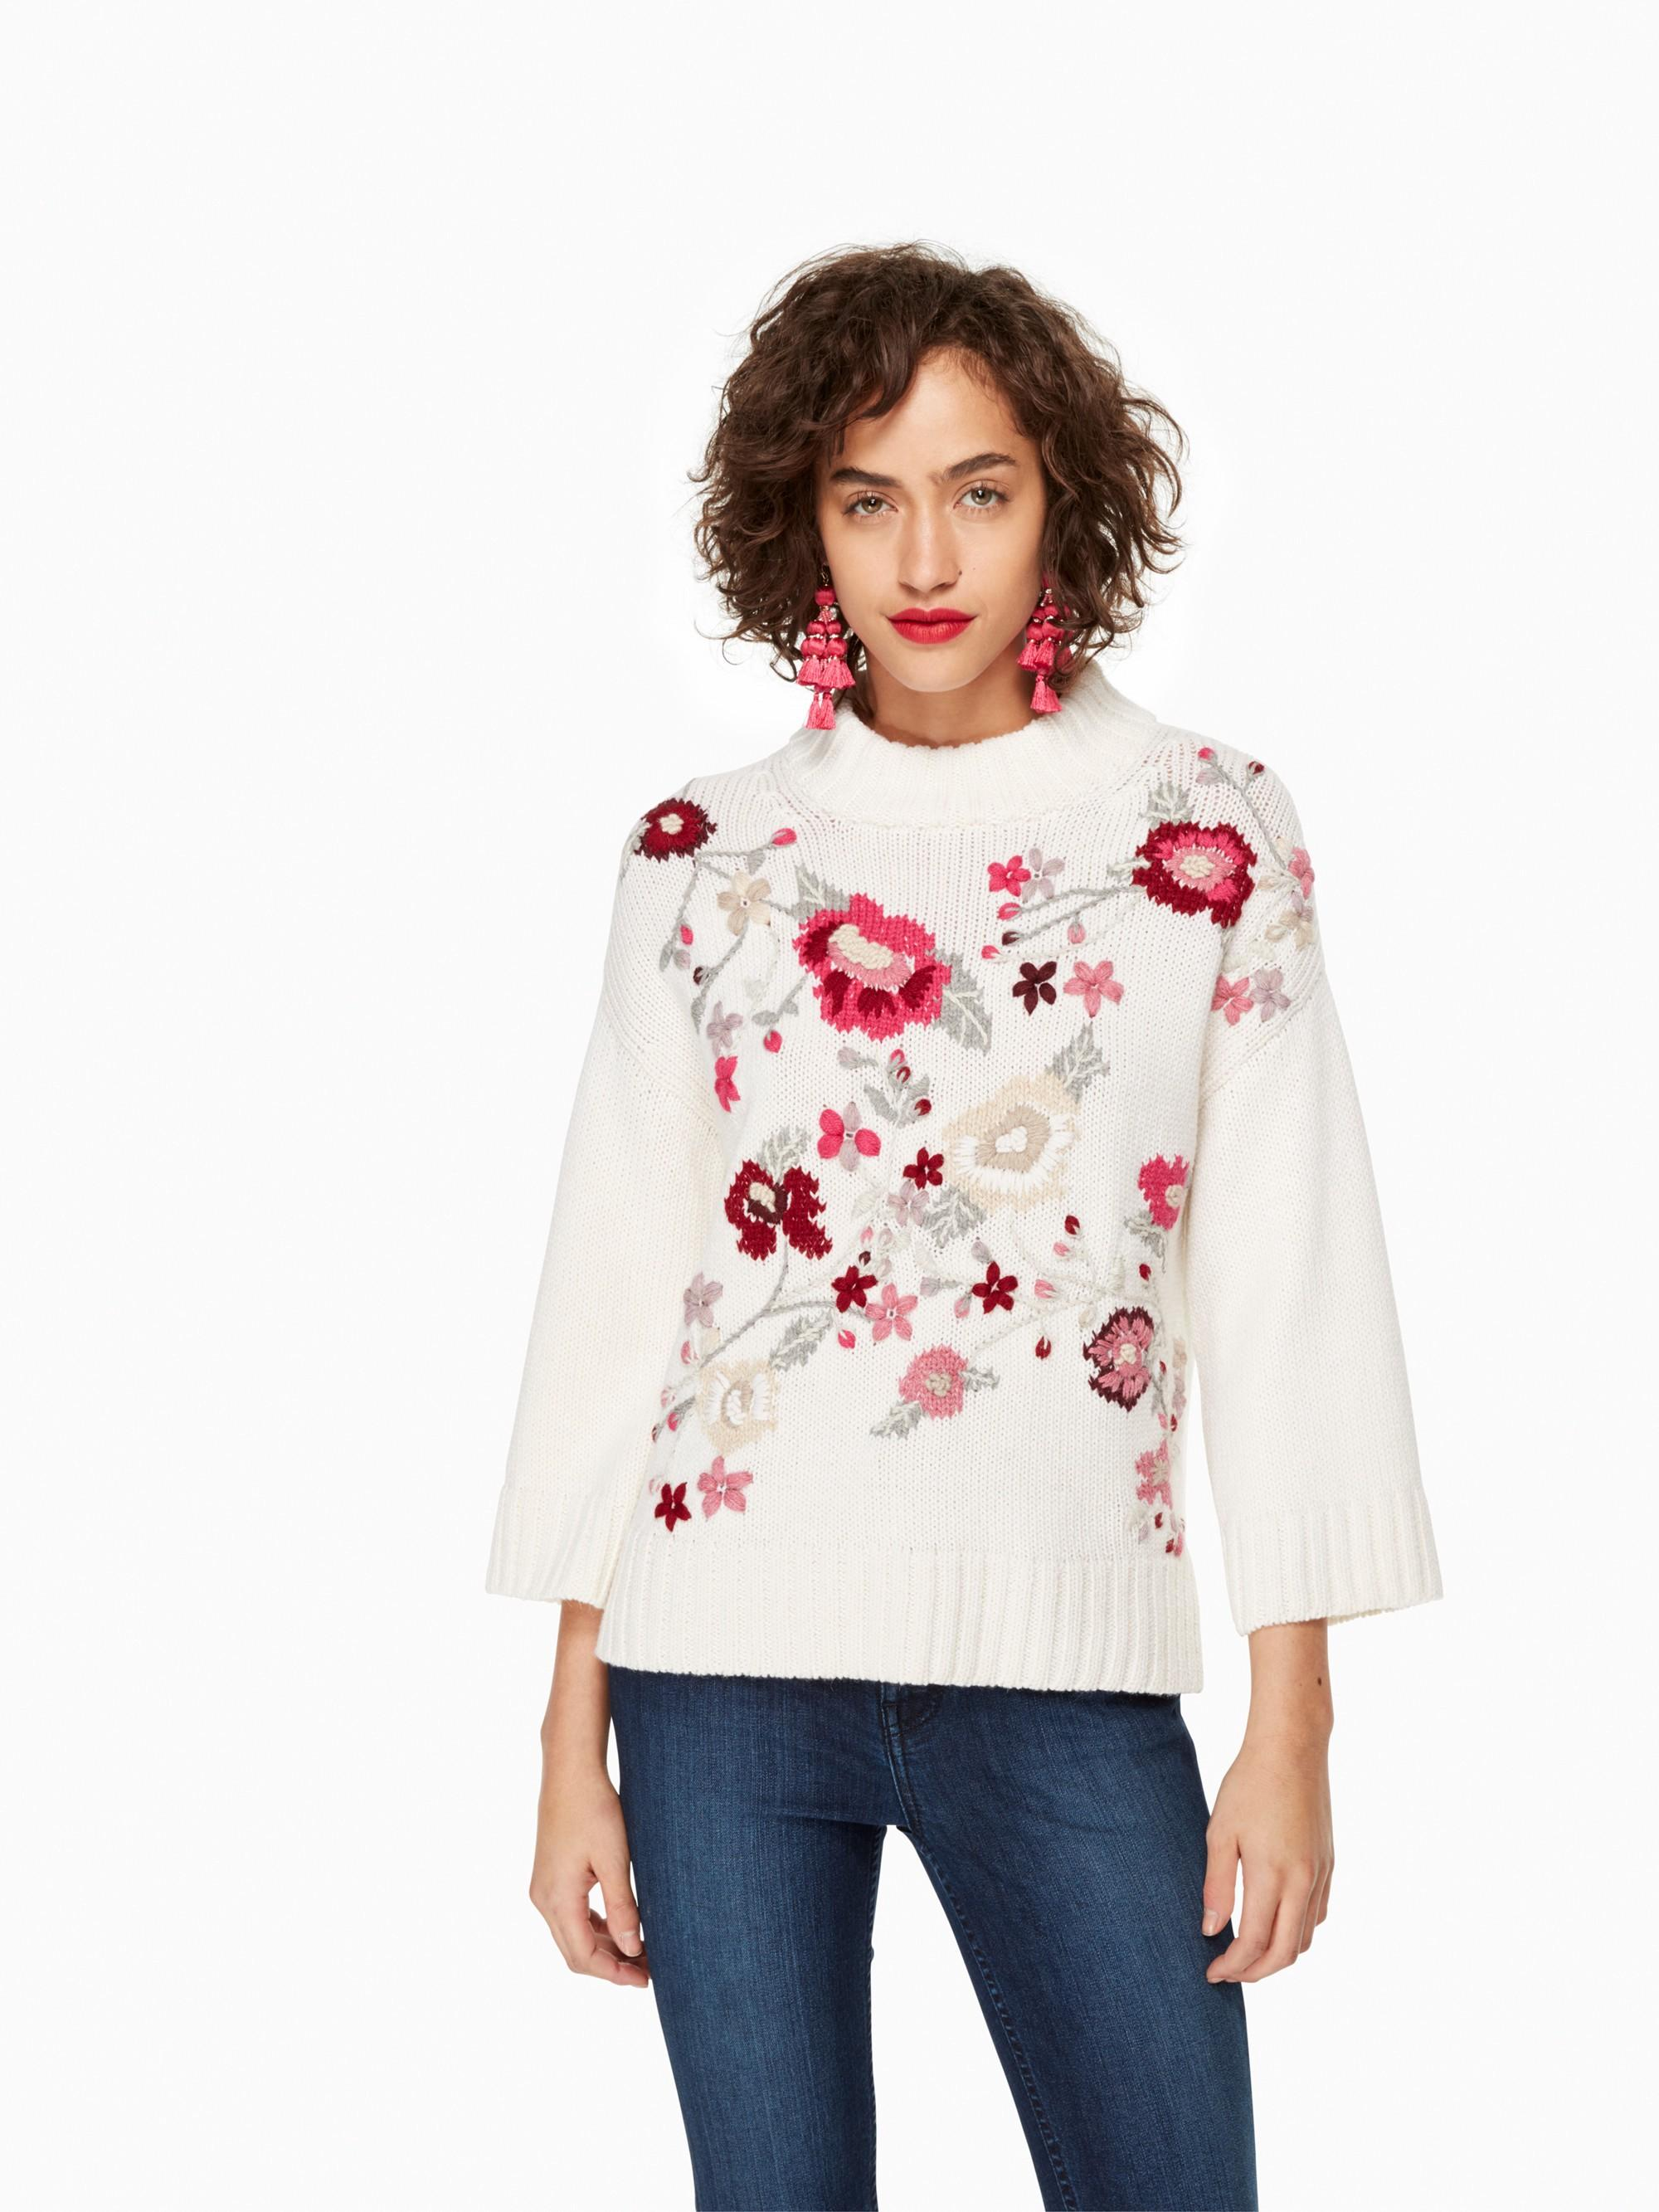 Kate Spade Dayna Sweater In Cream